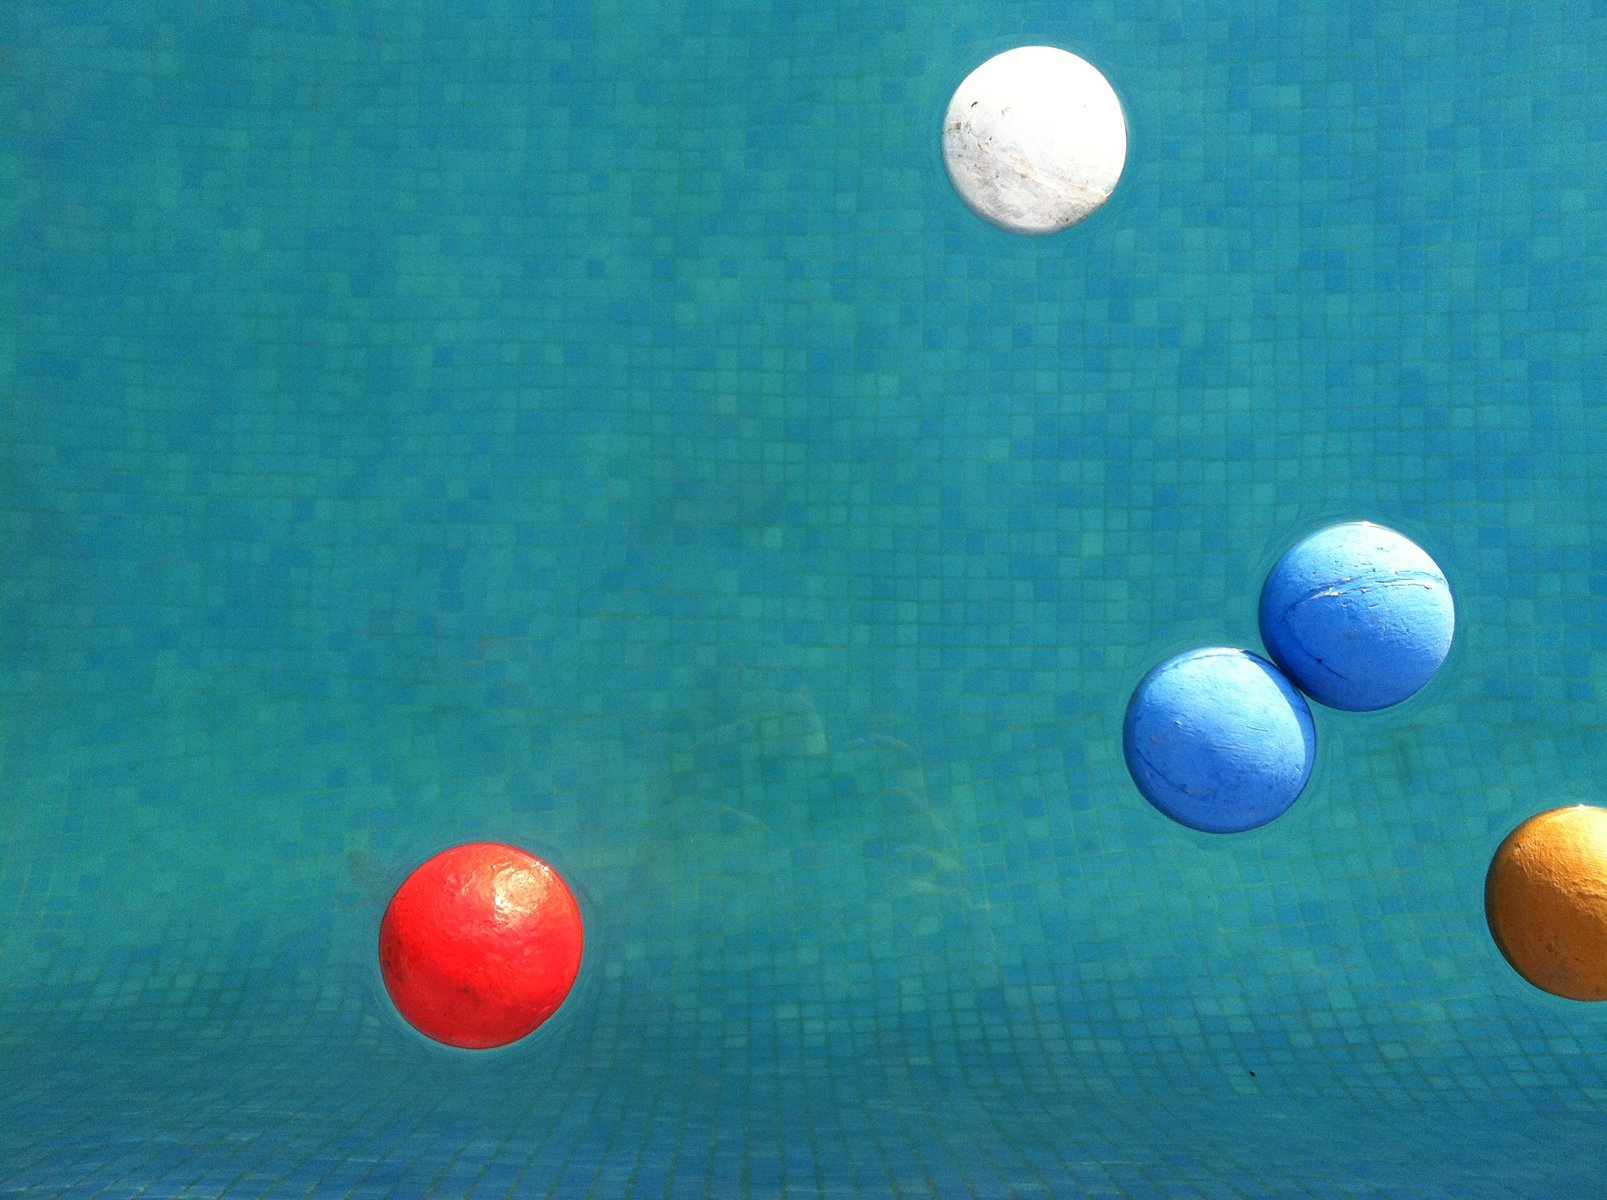 Five painted balls, blue, red, yellow and white, float in a sunny, blue-tiled pool.